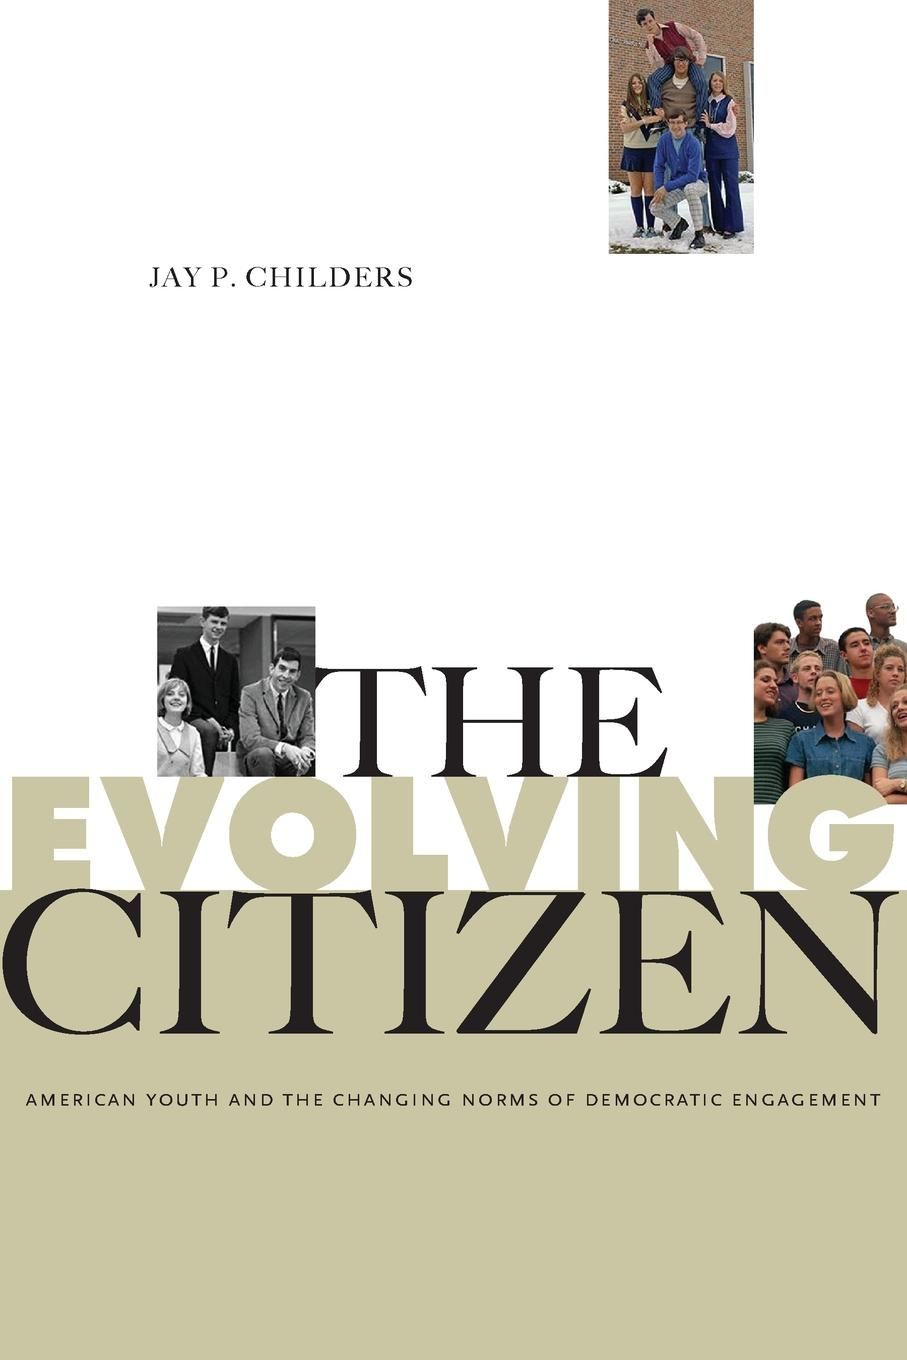 Jay P. Childers The Evolving Citizen. American Youth and the Changing Norms of Democratic Engagement lives in translation sikh youth as british citizens